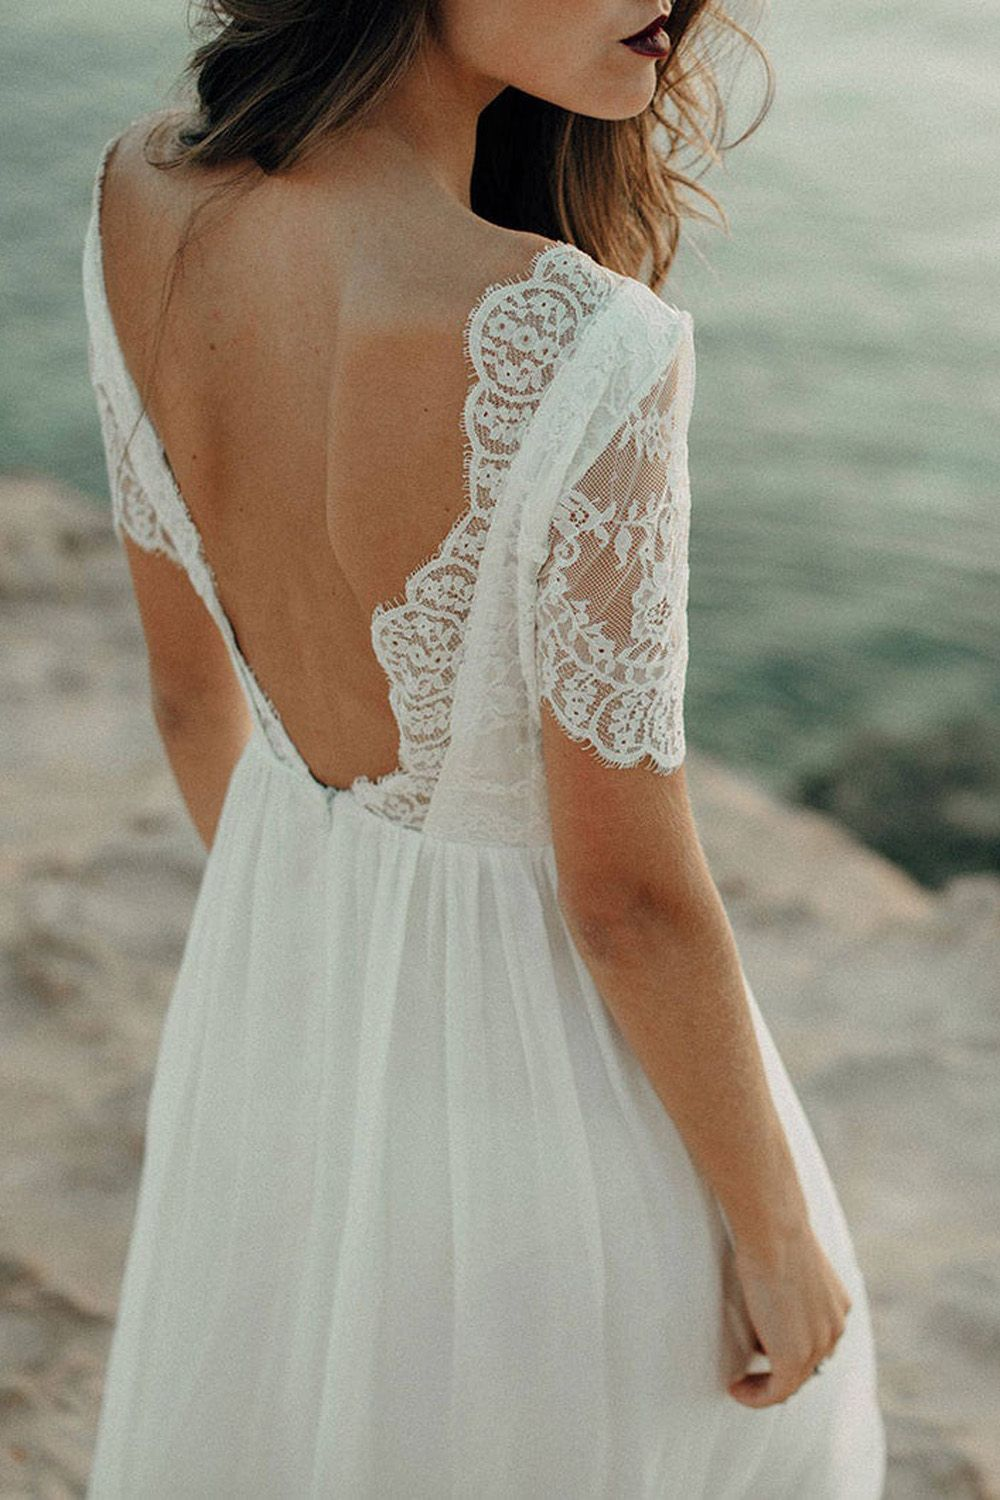 Backless Wedding Dress Lace A Line Bridal Gown With Sleeves Boho Beach Wed Short Sleeve Wedding Dress Wedding Dresses Vintage Bohemian Bateau Wedding Dress [ 1500 x 1000 Pixel ]